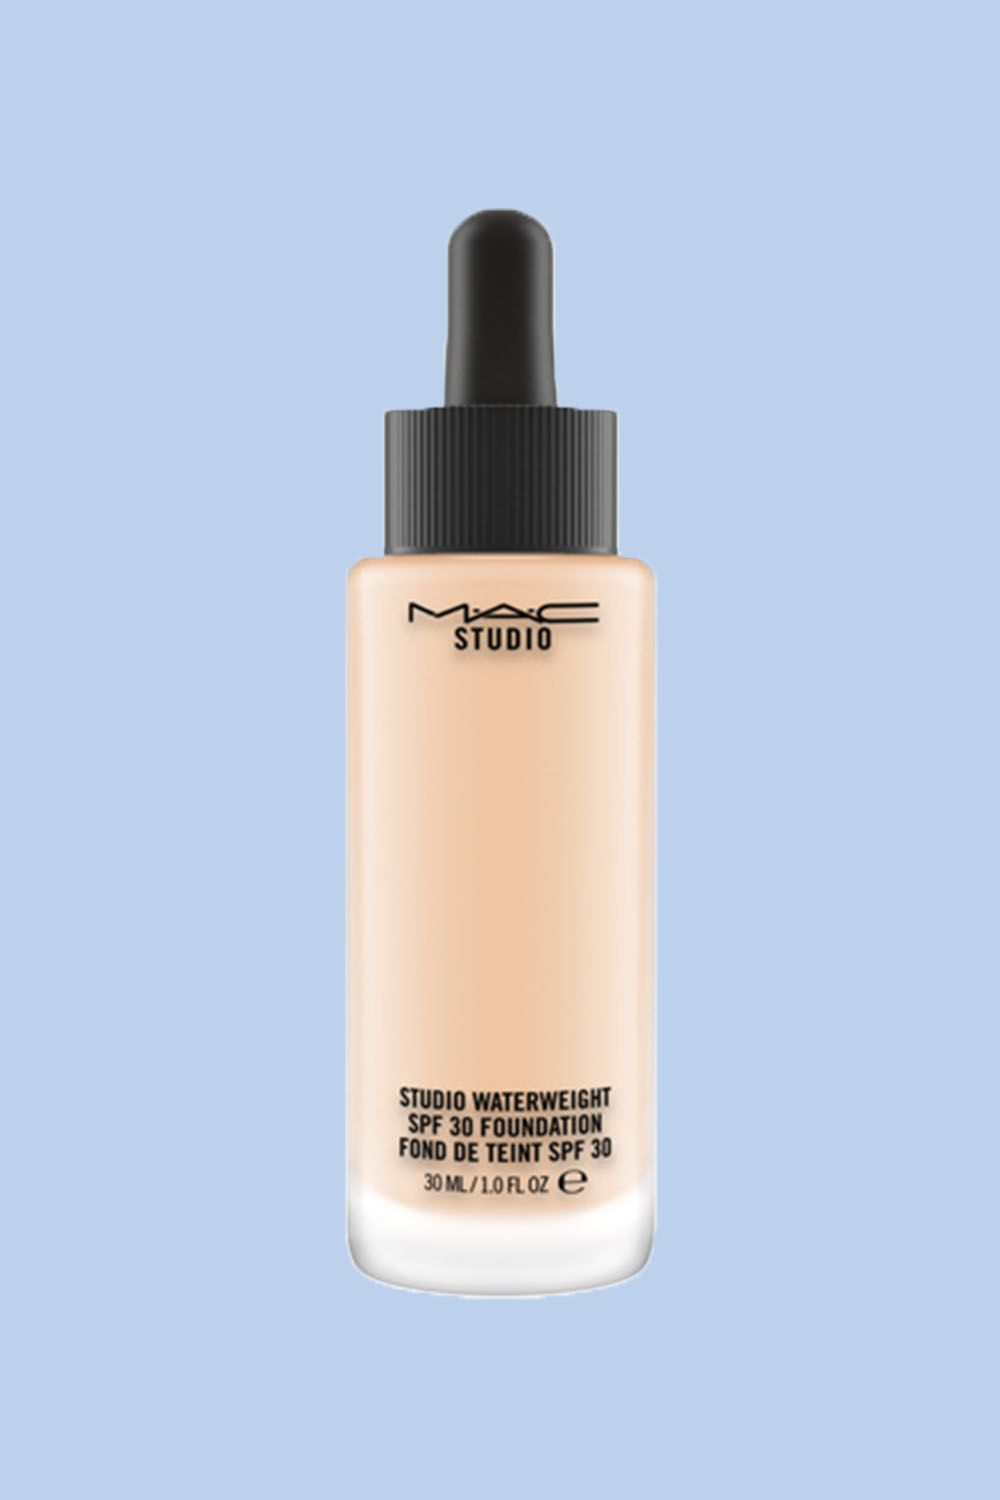 "<p>This water-based, gel-serum foundation will feel like heaven on dry skin while delivering F-L-A-W-L-E-S-S coverage. The kicker? It also boasts SPF 30 sun protection AKA will keep you looking younger longer.</p><p><br></p><p>MAC Studio Waterweight SPF 30 Foundation, $33; <a href=""http://bit.ly/1RYIZlz"" target=""_blank"">macys.com</a>.</p>"